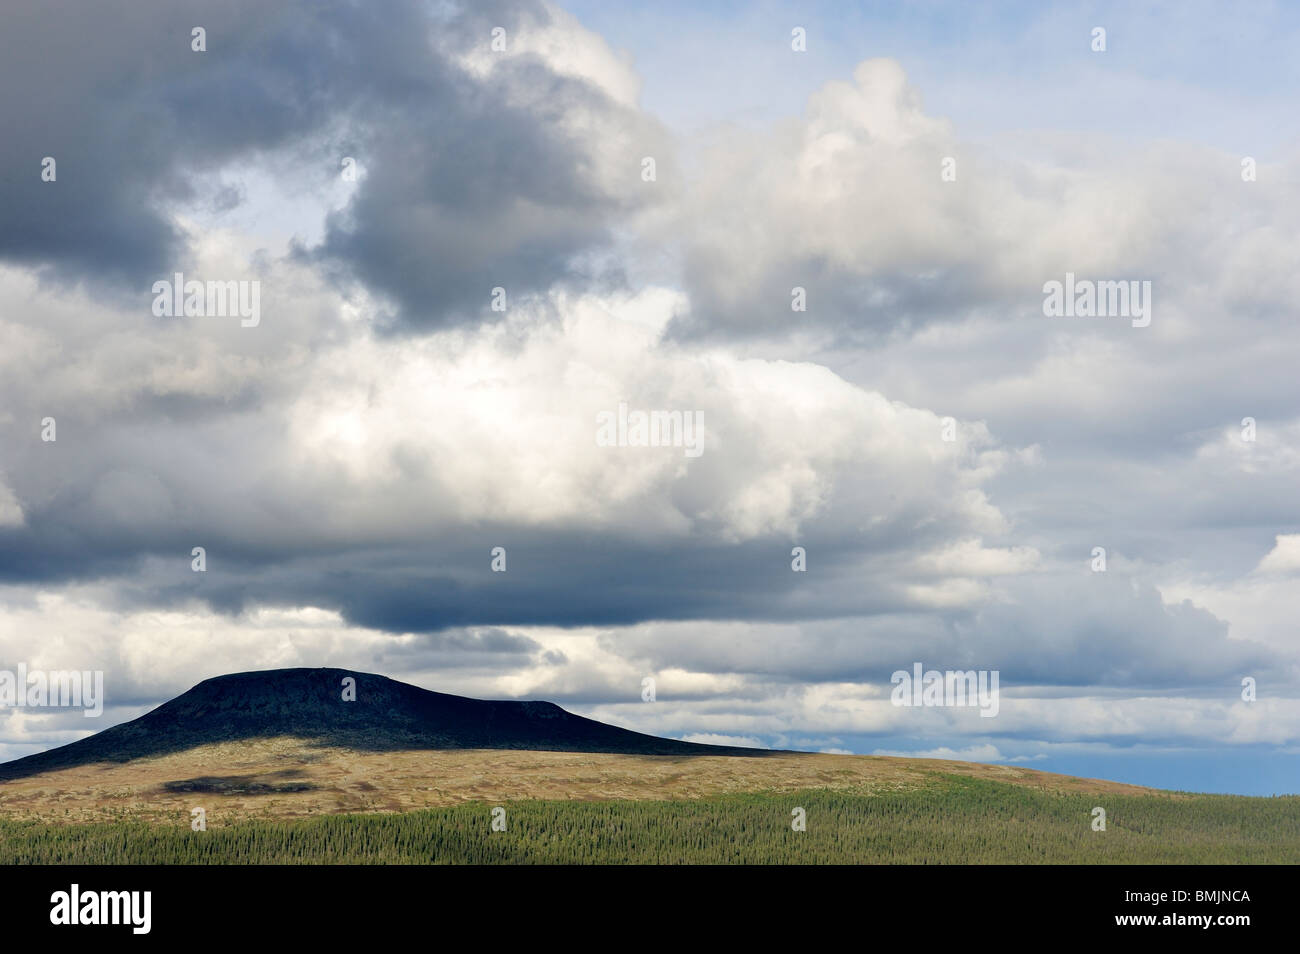 Mountain in the shade - Stock Image